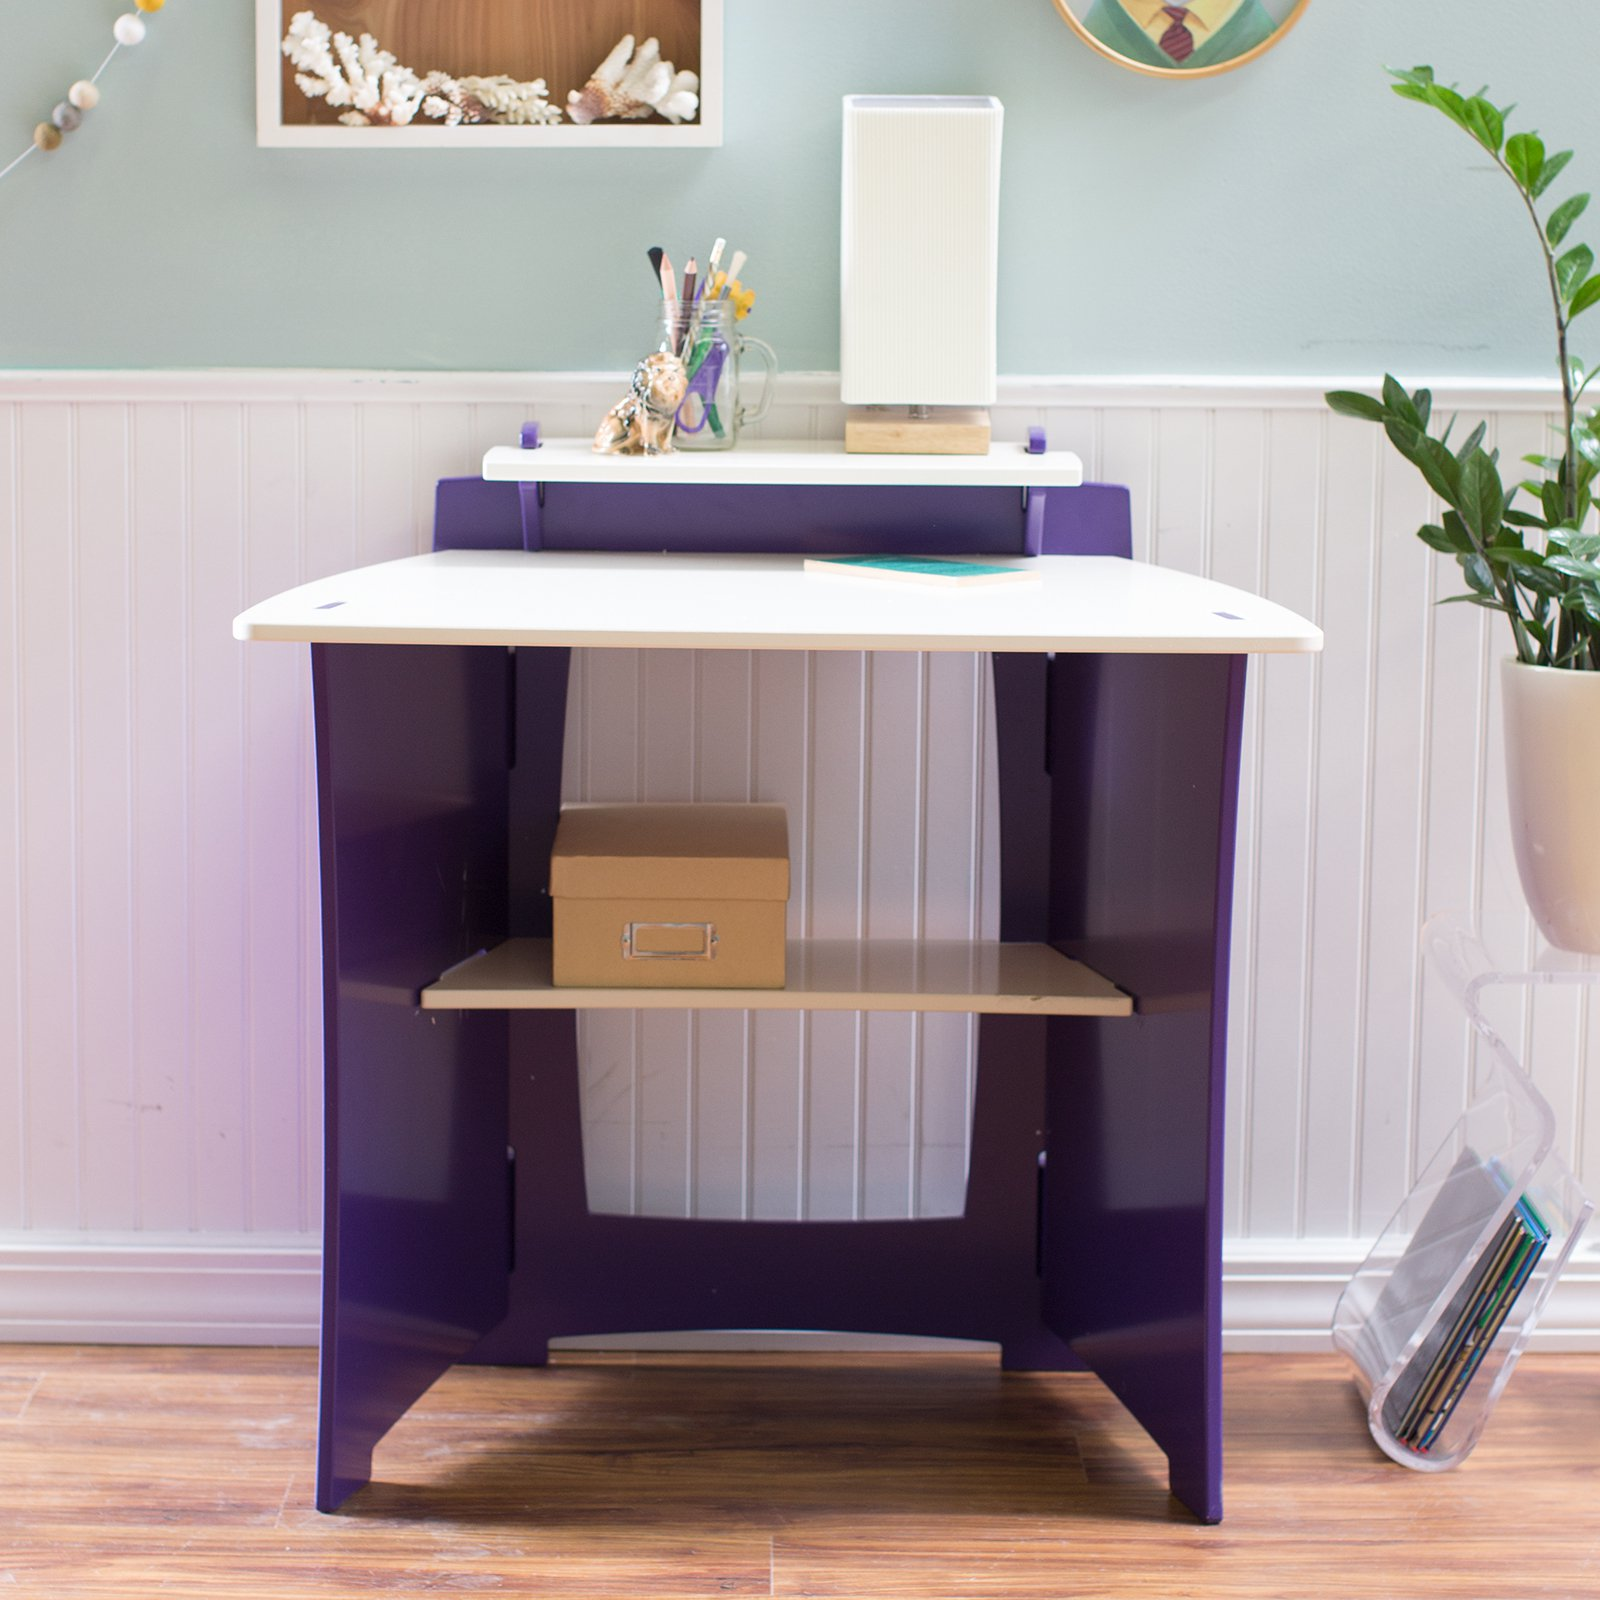 Legare Select Kids' Desk, Purple and White